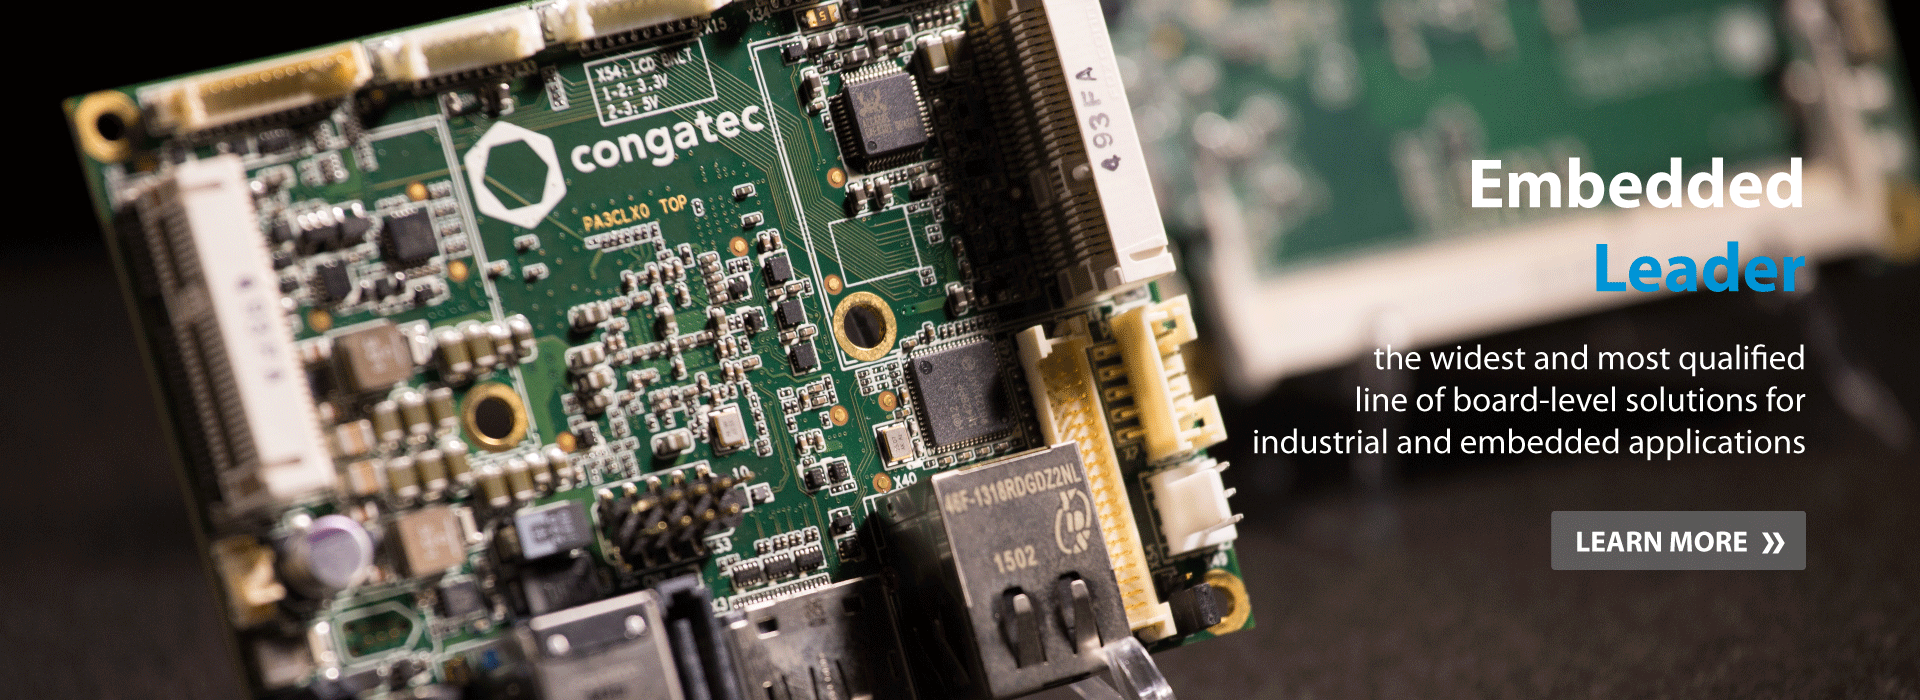 Boards and Modules for embedded and industrial applications